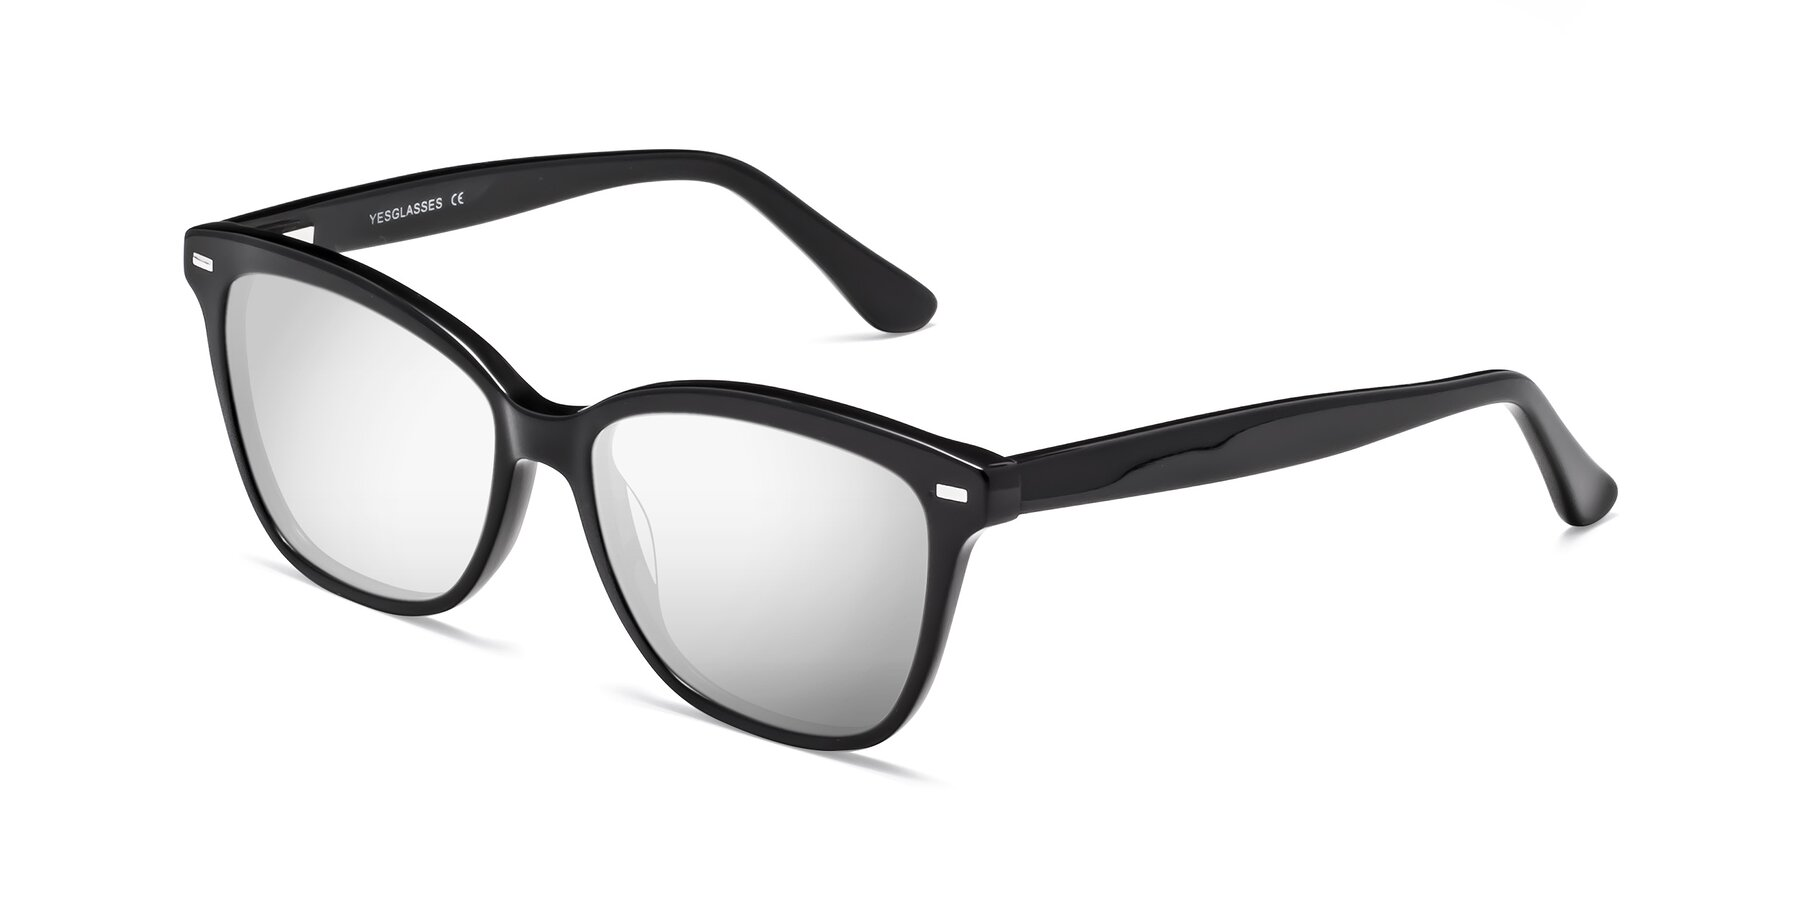 Angle of 17485 in Black with Silver Mirrored Lenses